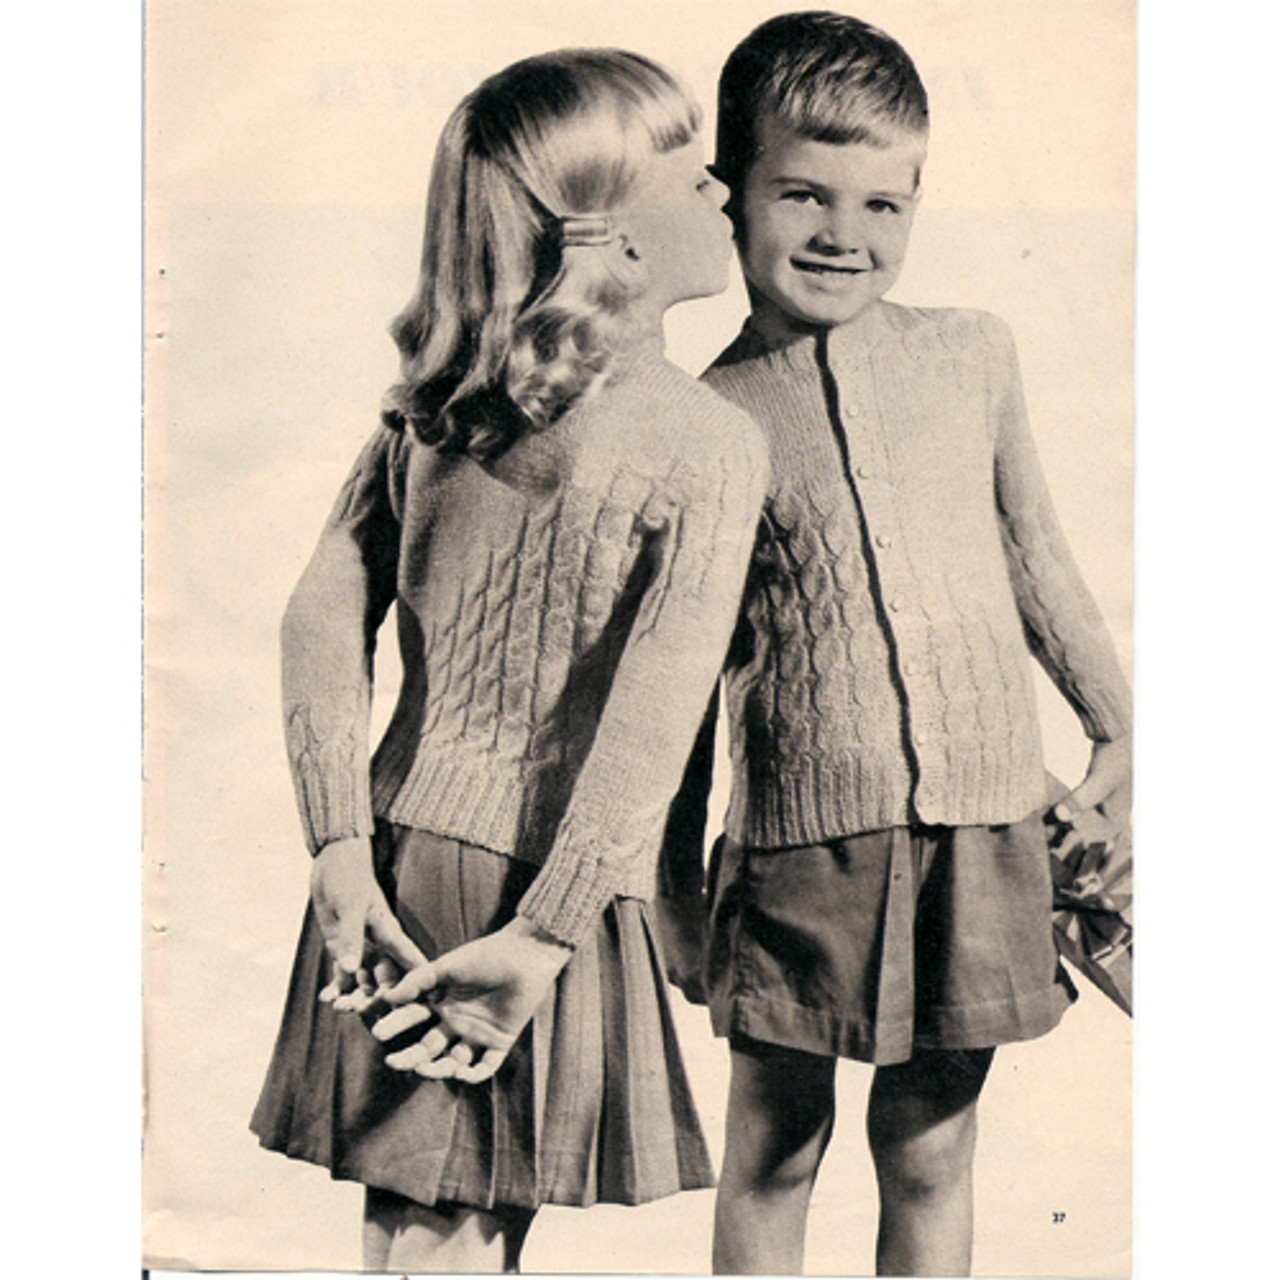 Boys Knitted Cardigan Pattern, Vintage 1950s